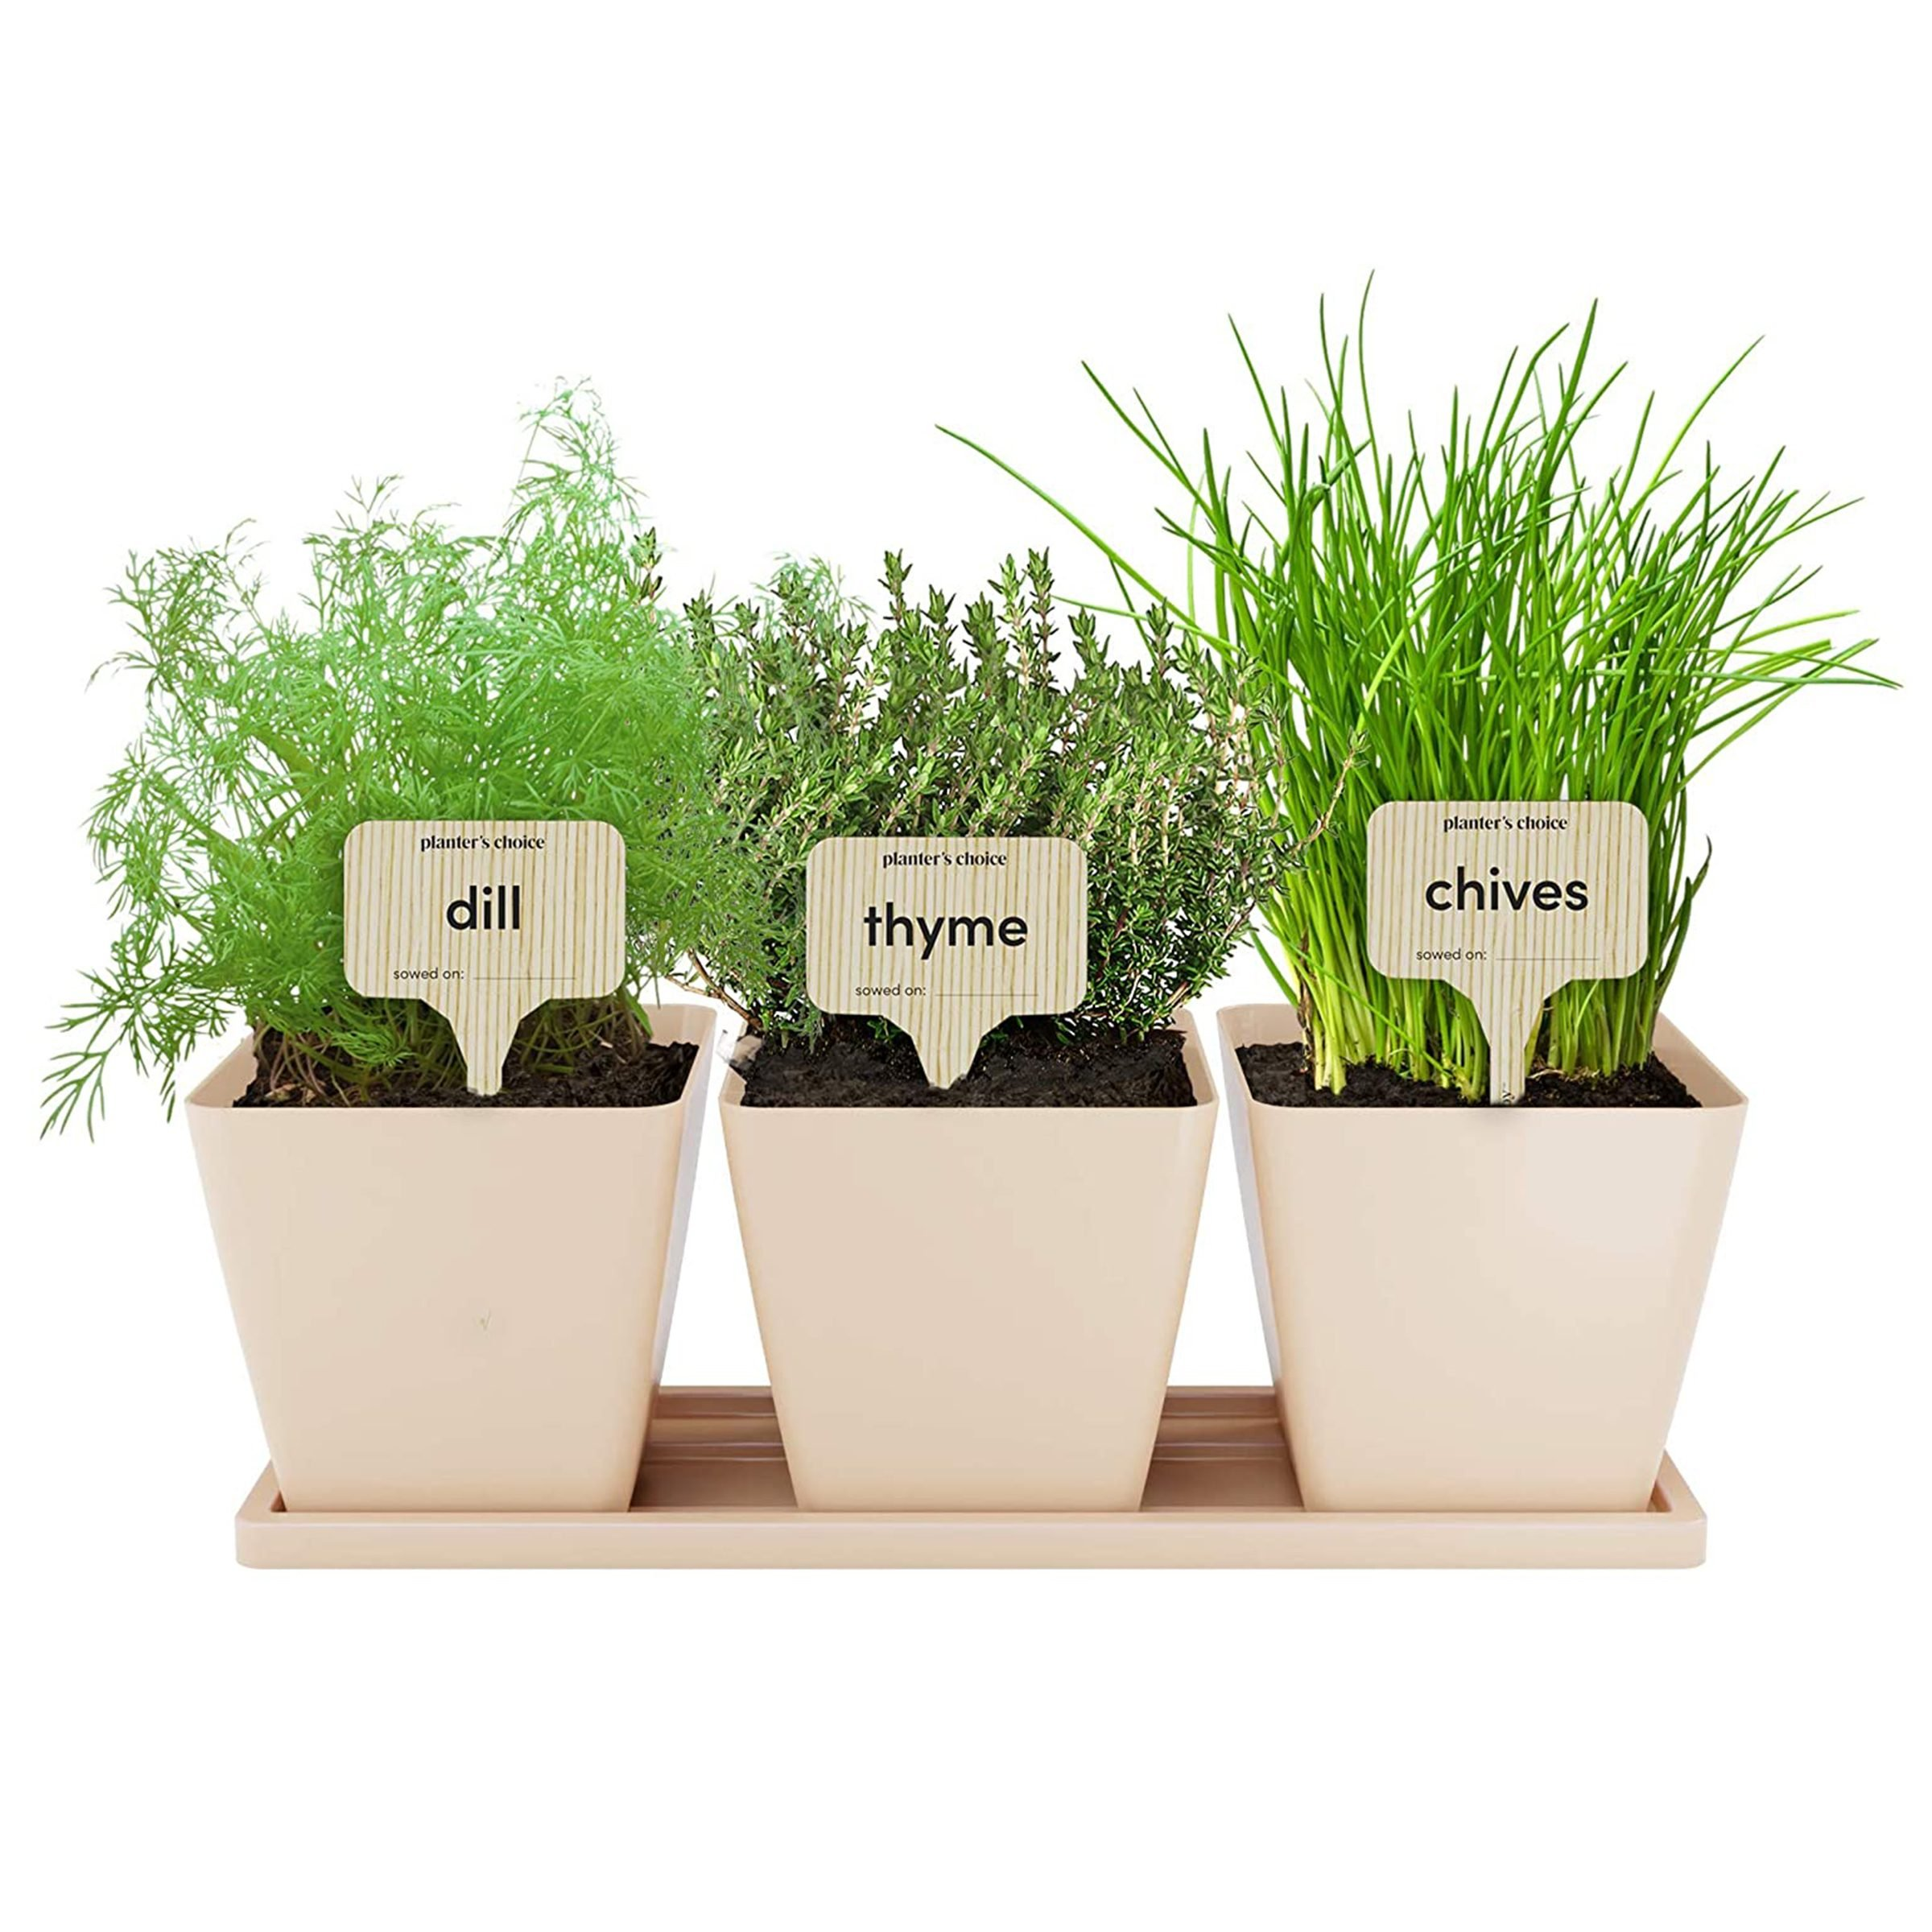 dill, thyme, and chives in small beige pots